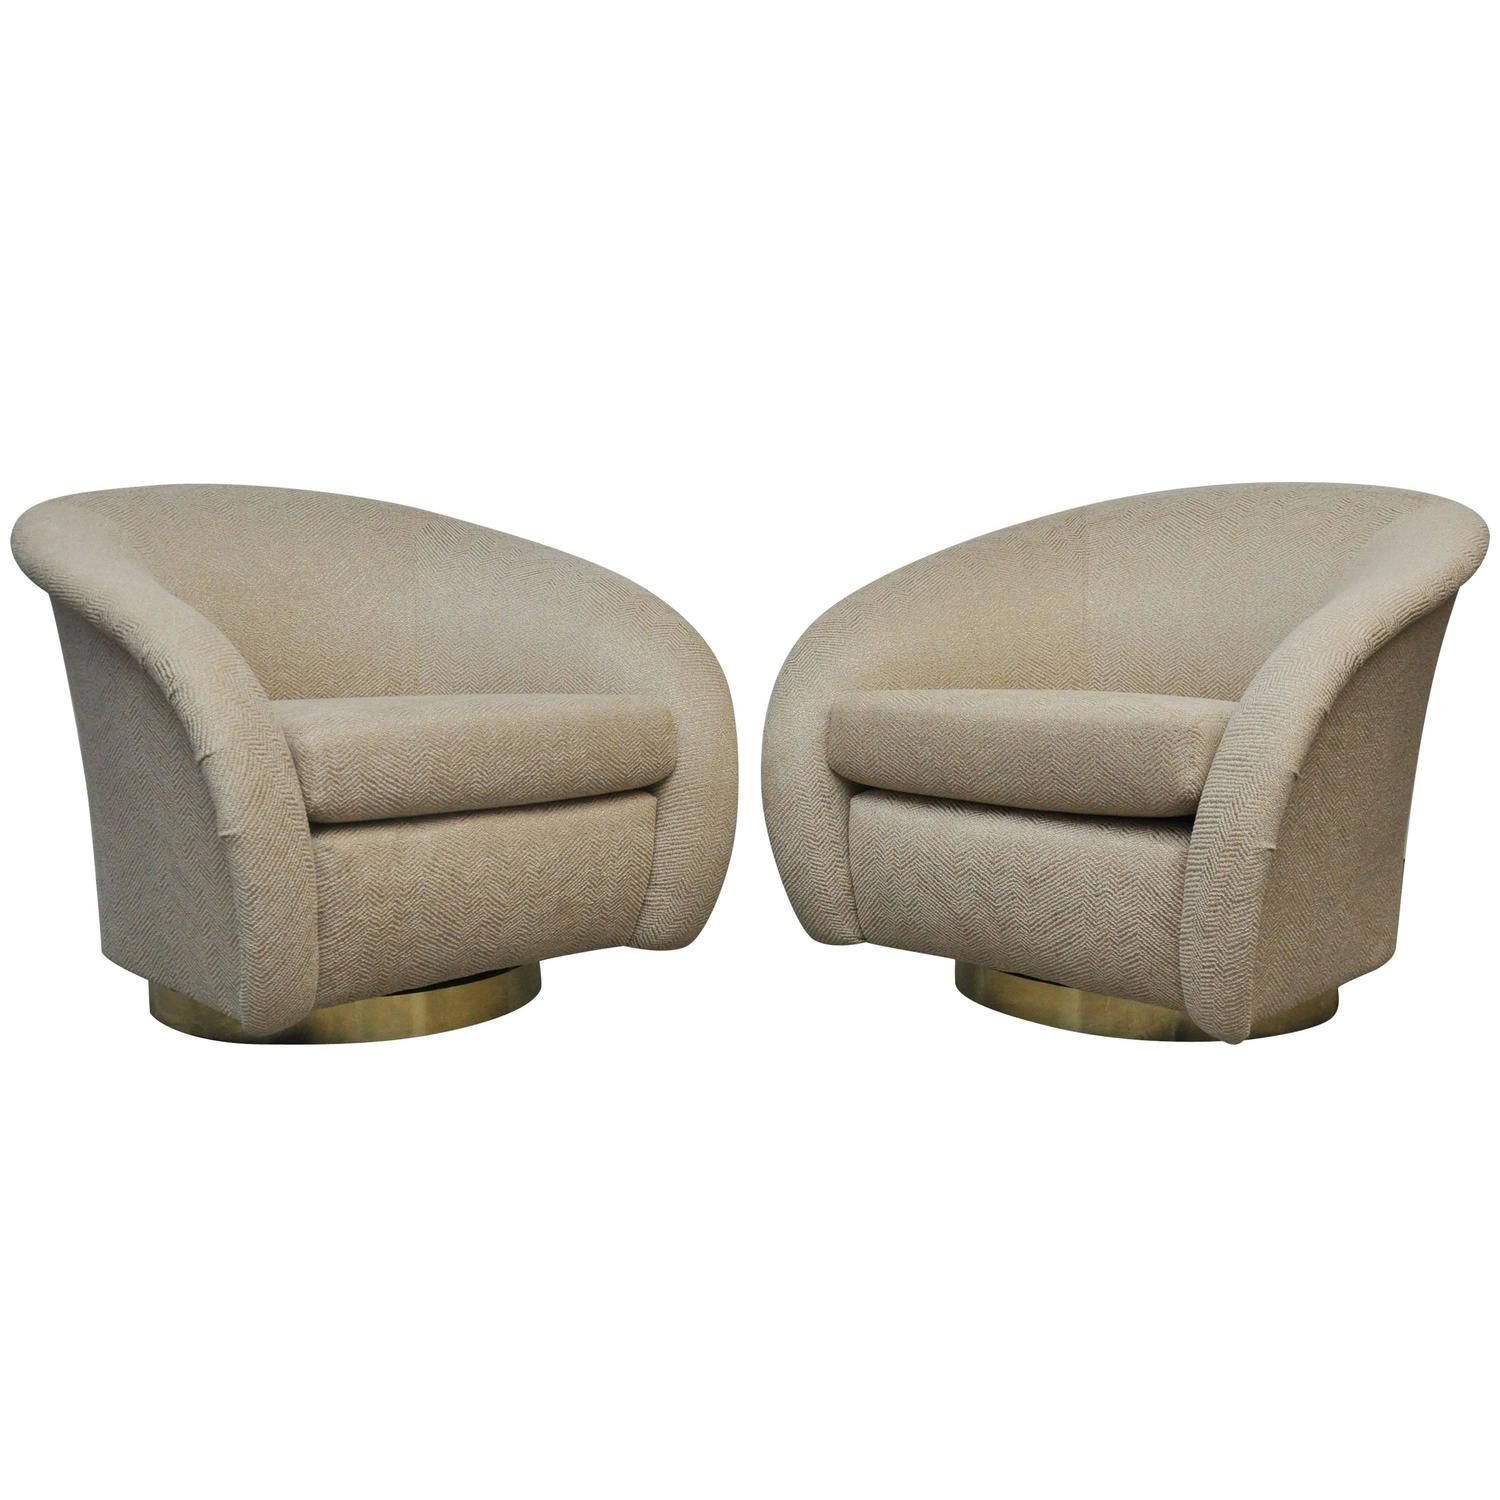 Pair Of Milo Baughman Swivel Chairs On Brass Bases